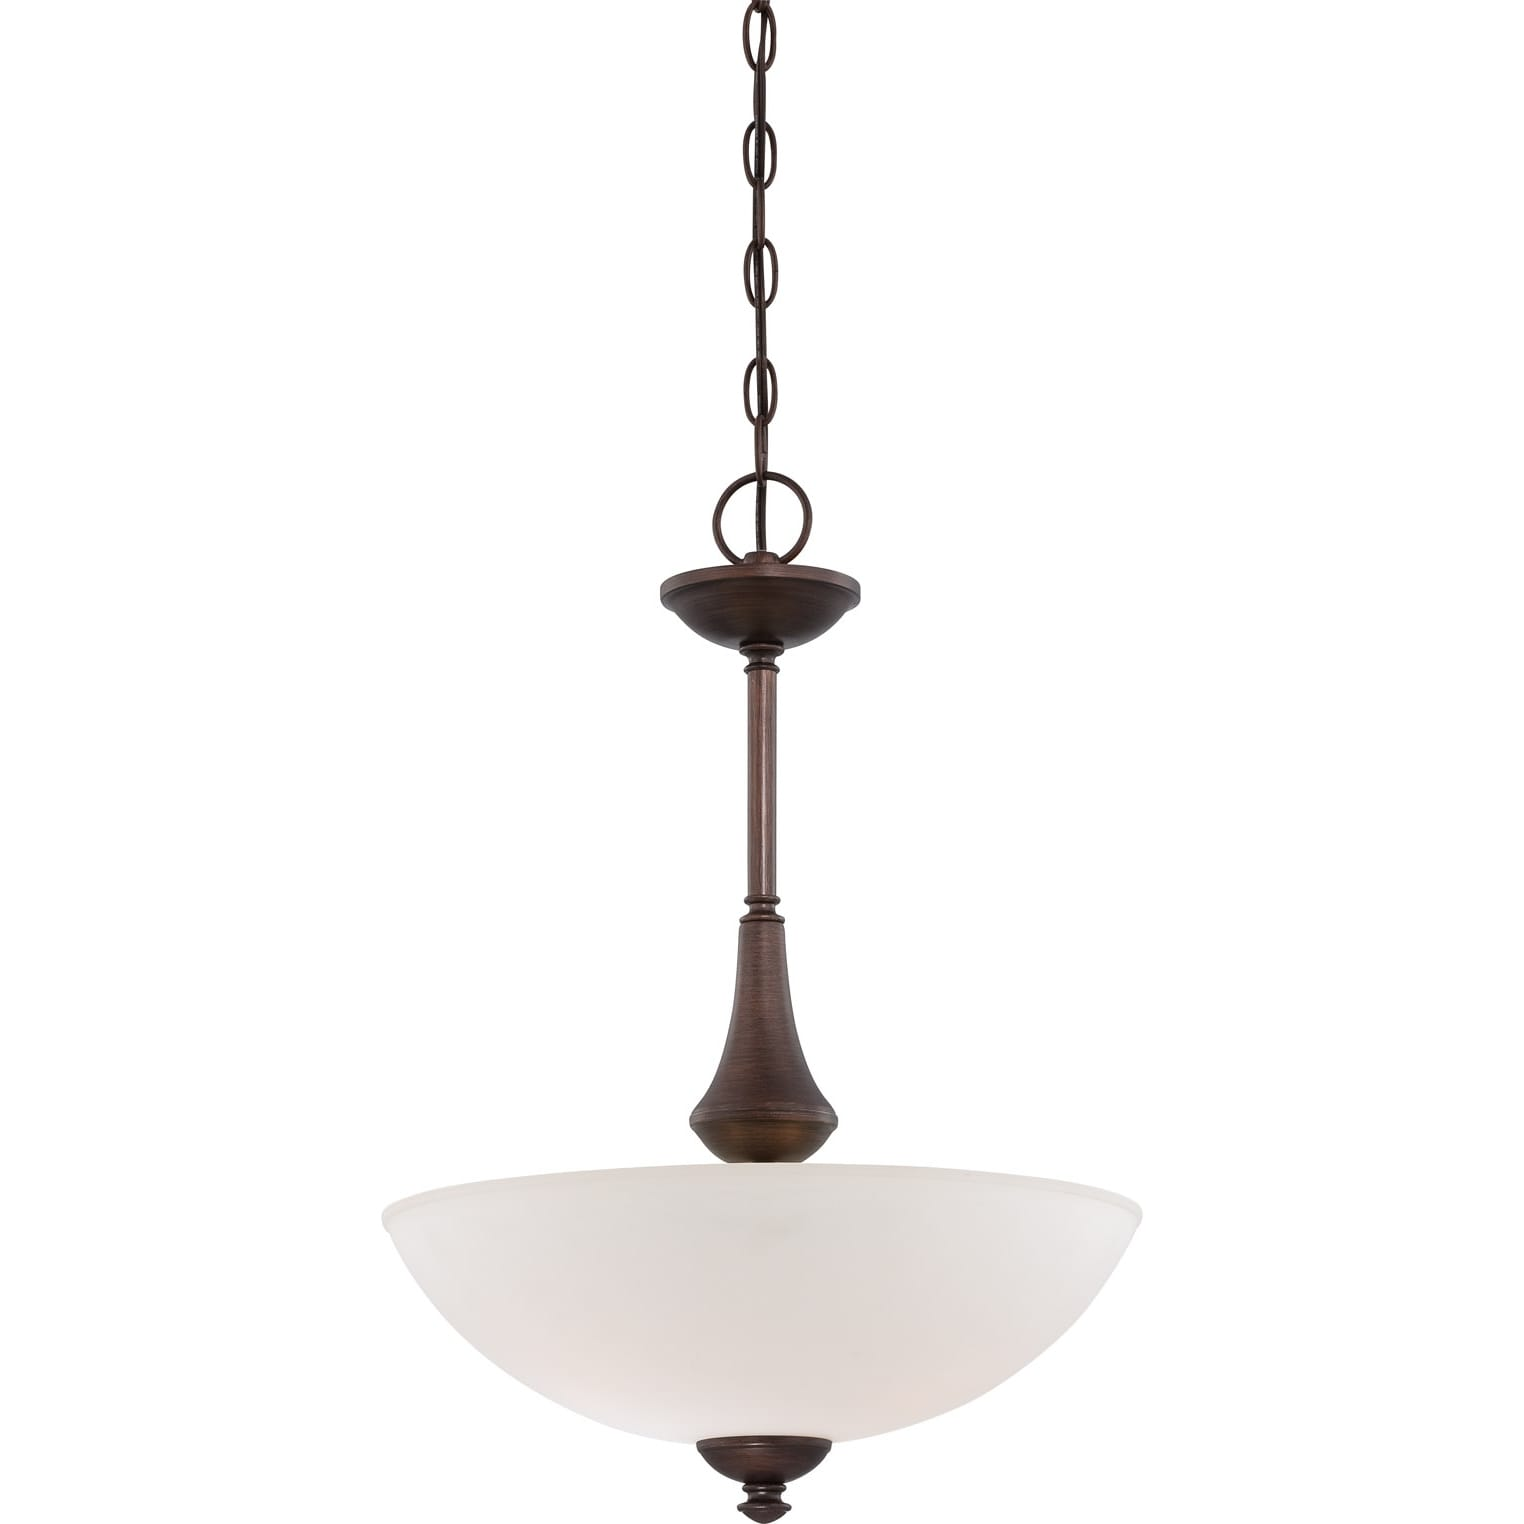 Nuvo Patton 3-light Prairie Bronze Pendant